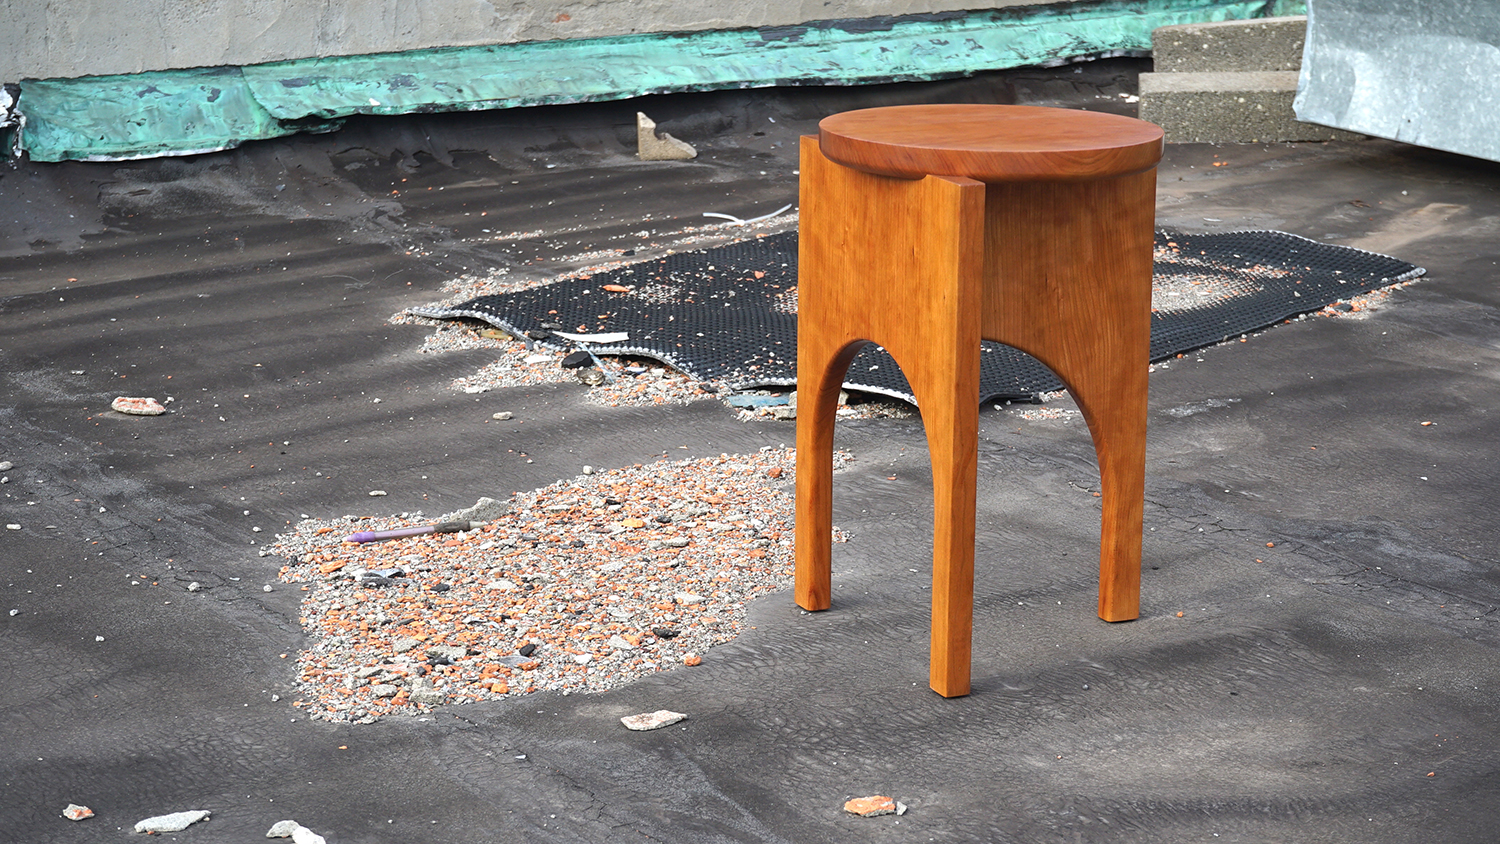 A finely crafted stool that represents minimalism of form, material and production processes.